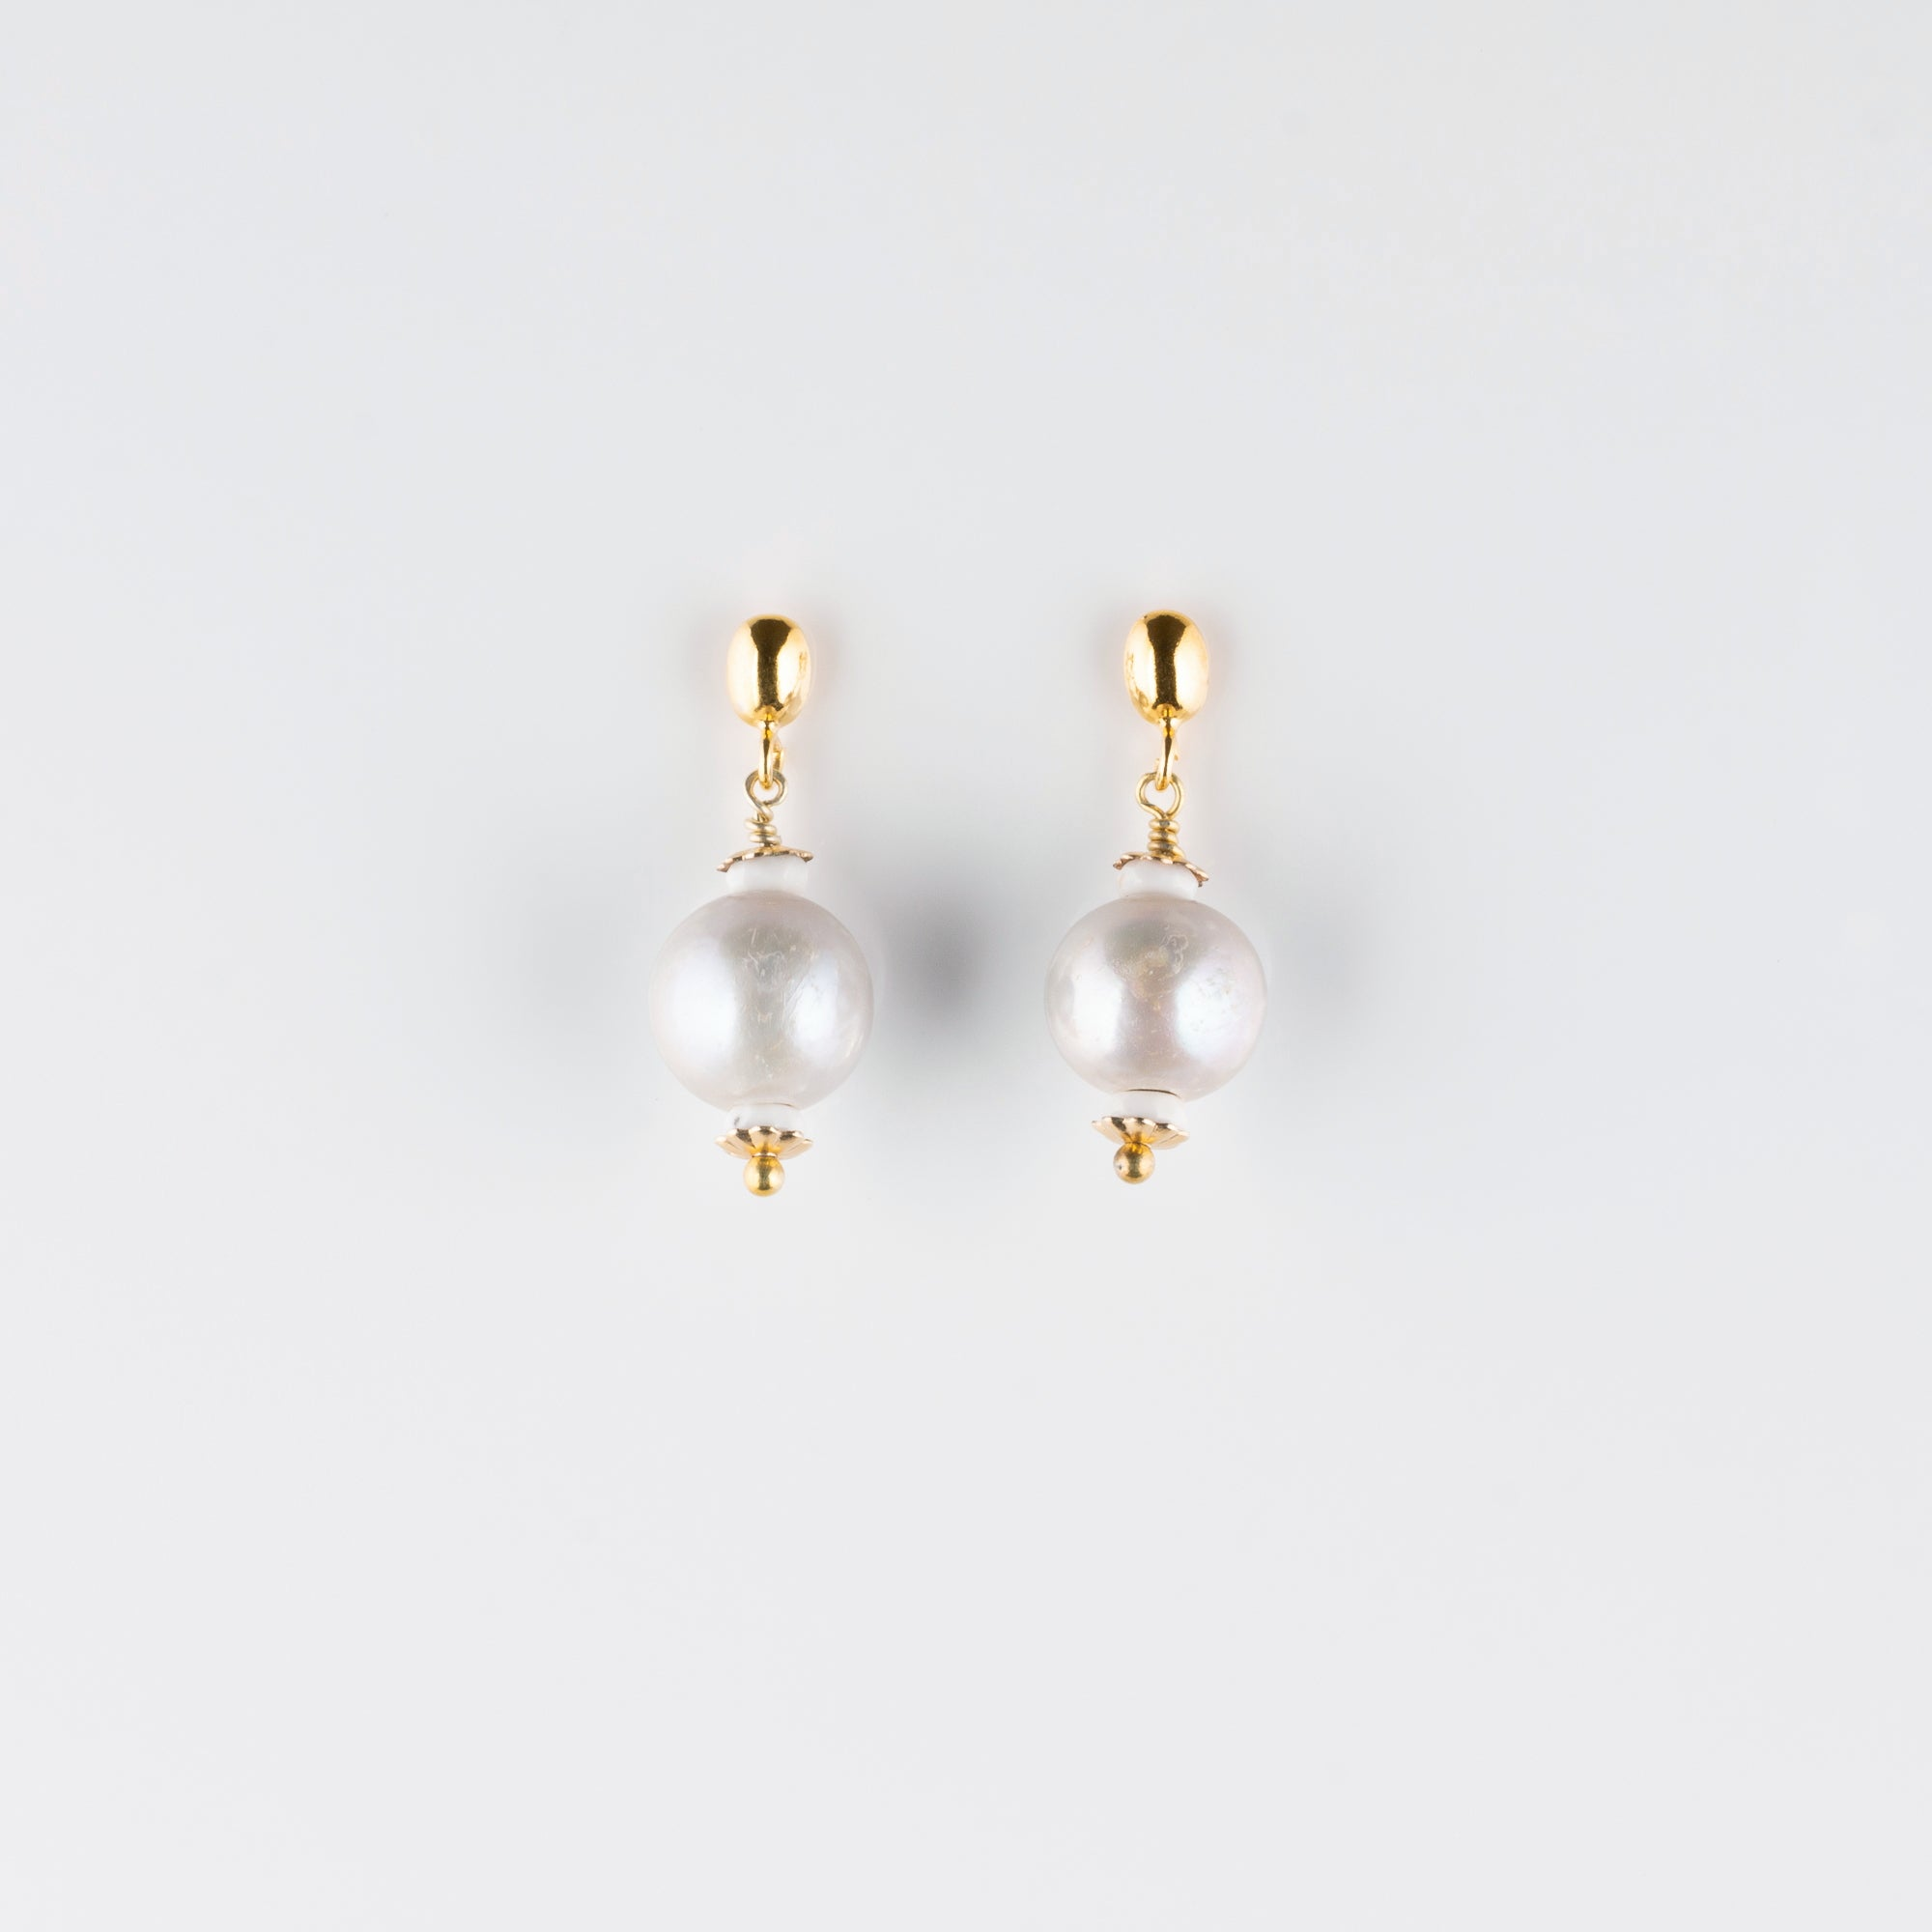 VERMEIL POST EARRINGS // PEARL